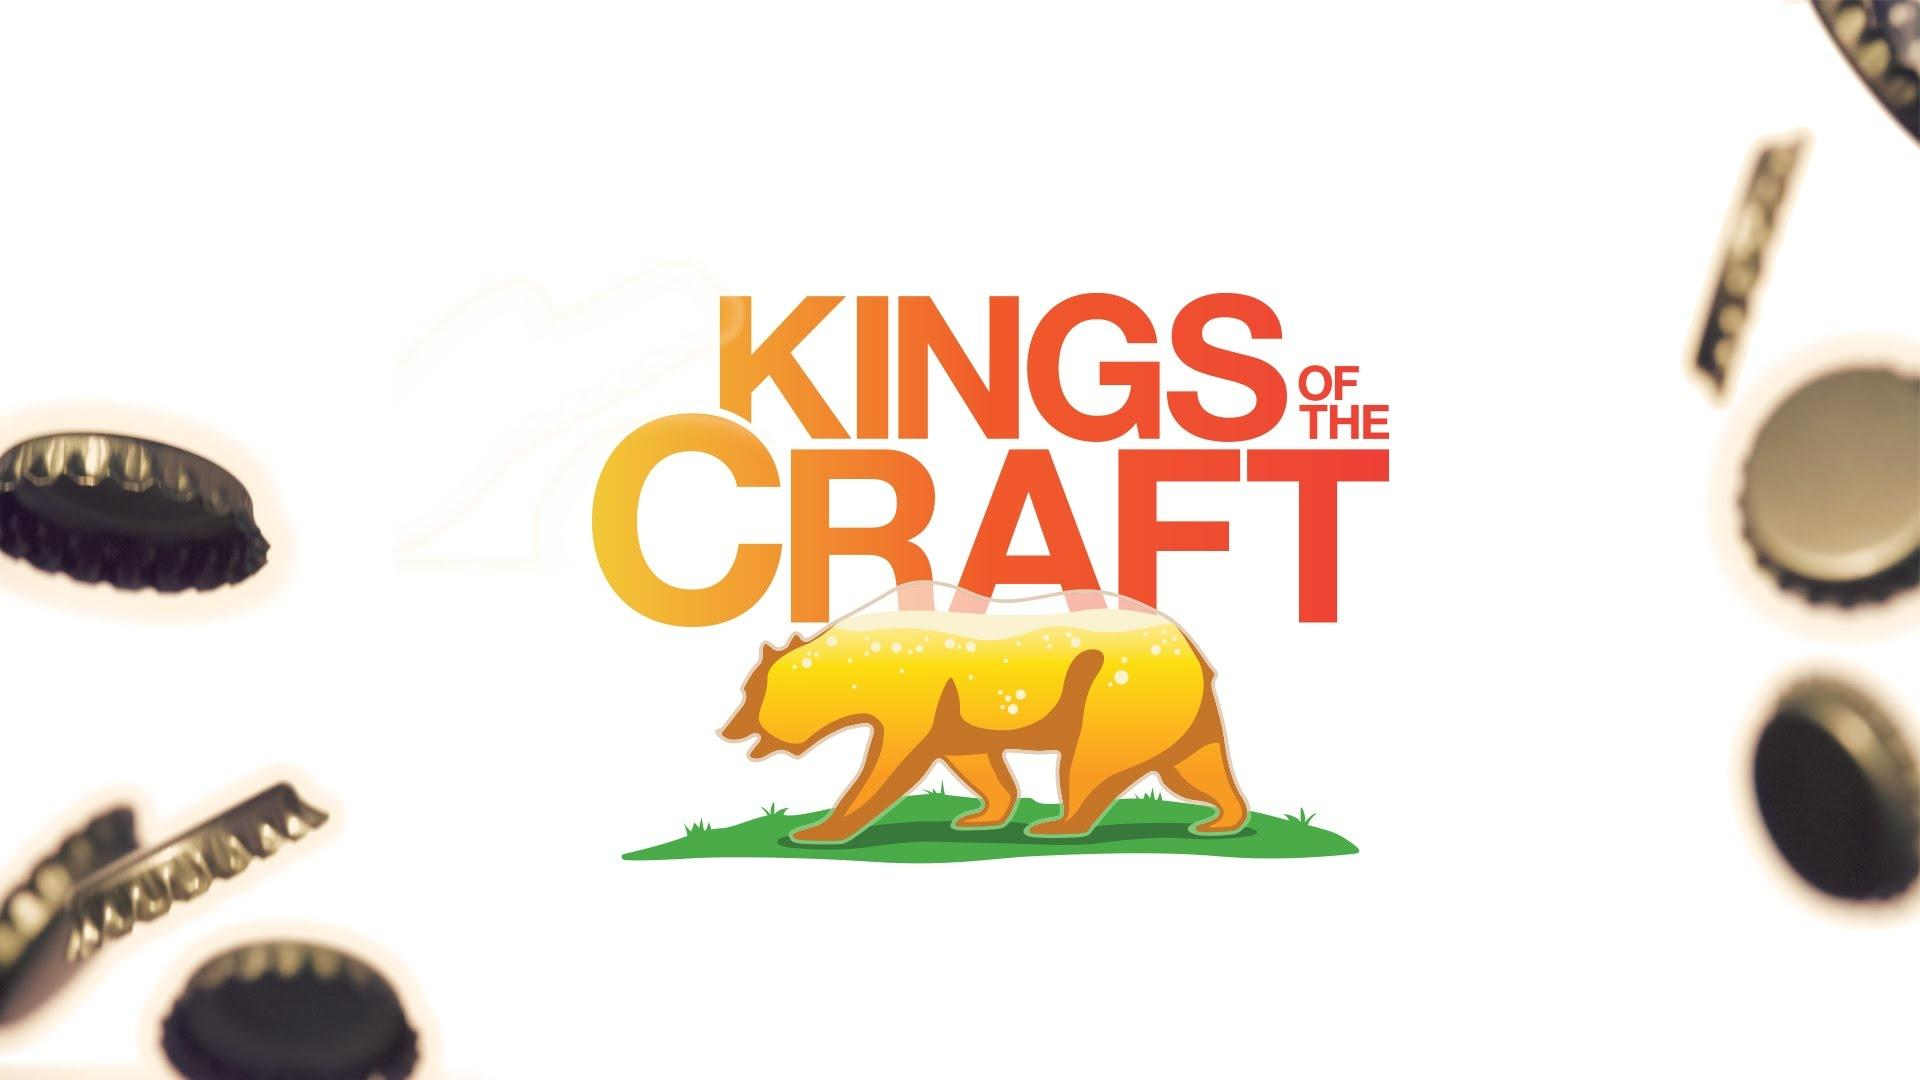 watch full episodes online of kings of the craft on pbs